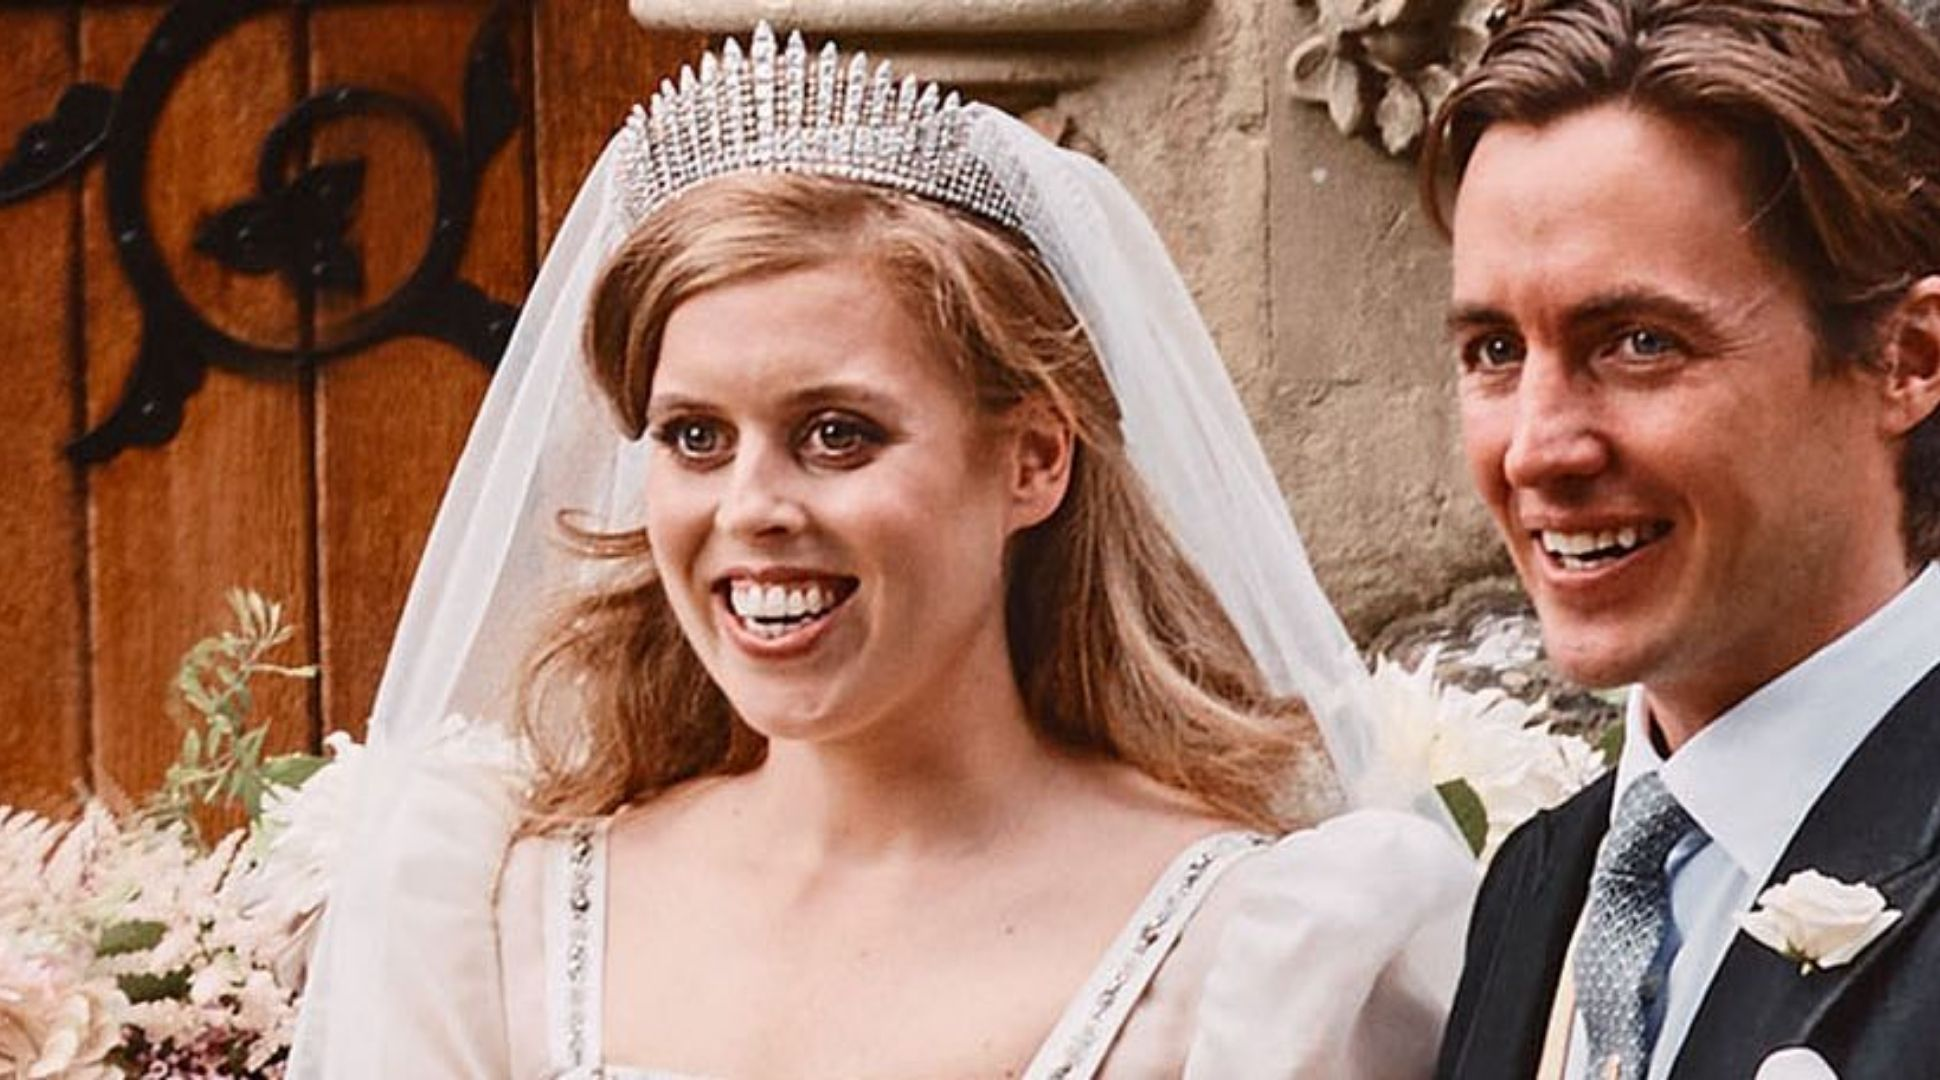 Princess Beatrice Wedding Dress Every Picture Released So Far